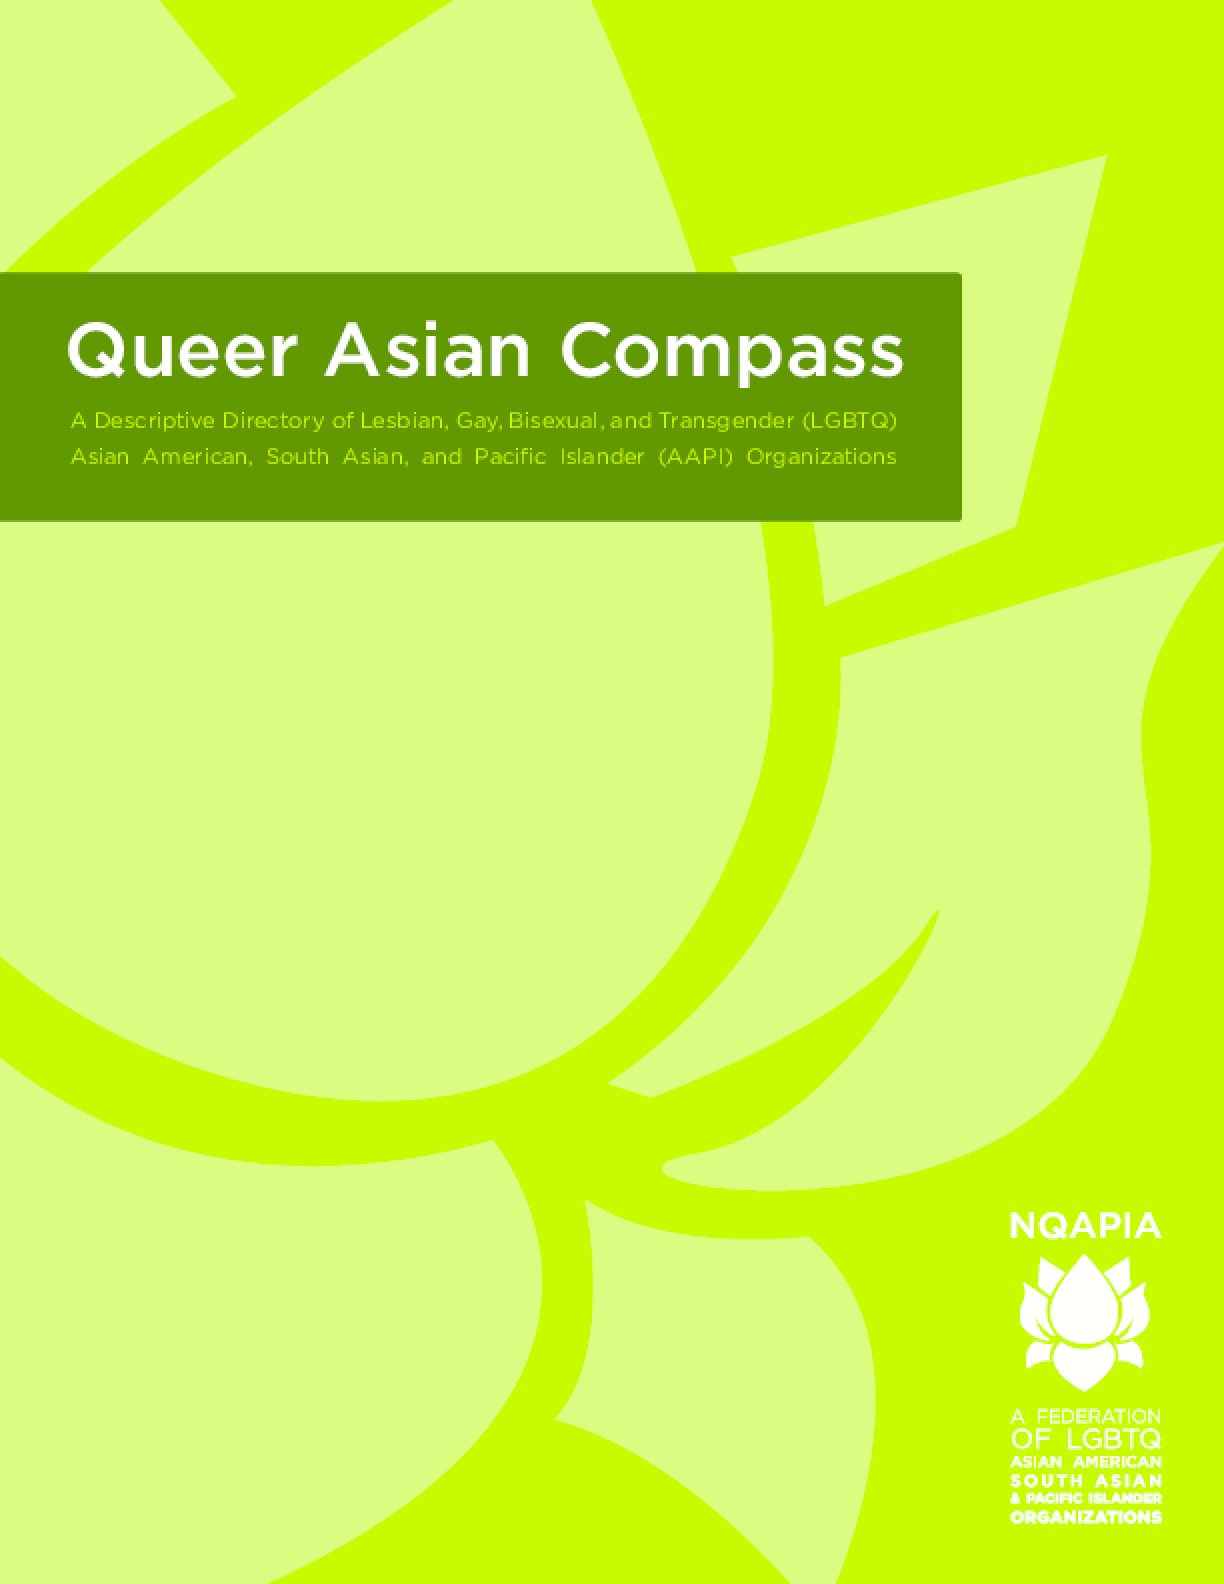 Queer Asian Compass: A Descriptive Directory of Lesbian, Gay, Bisexual, and Transgender (LGBTQ) Asian American, South Asian, and Pacific Islander (AAPI) Organizations